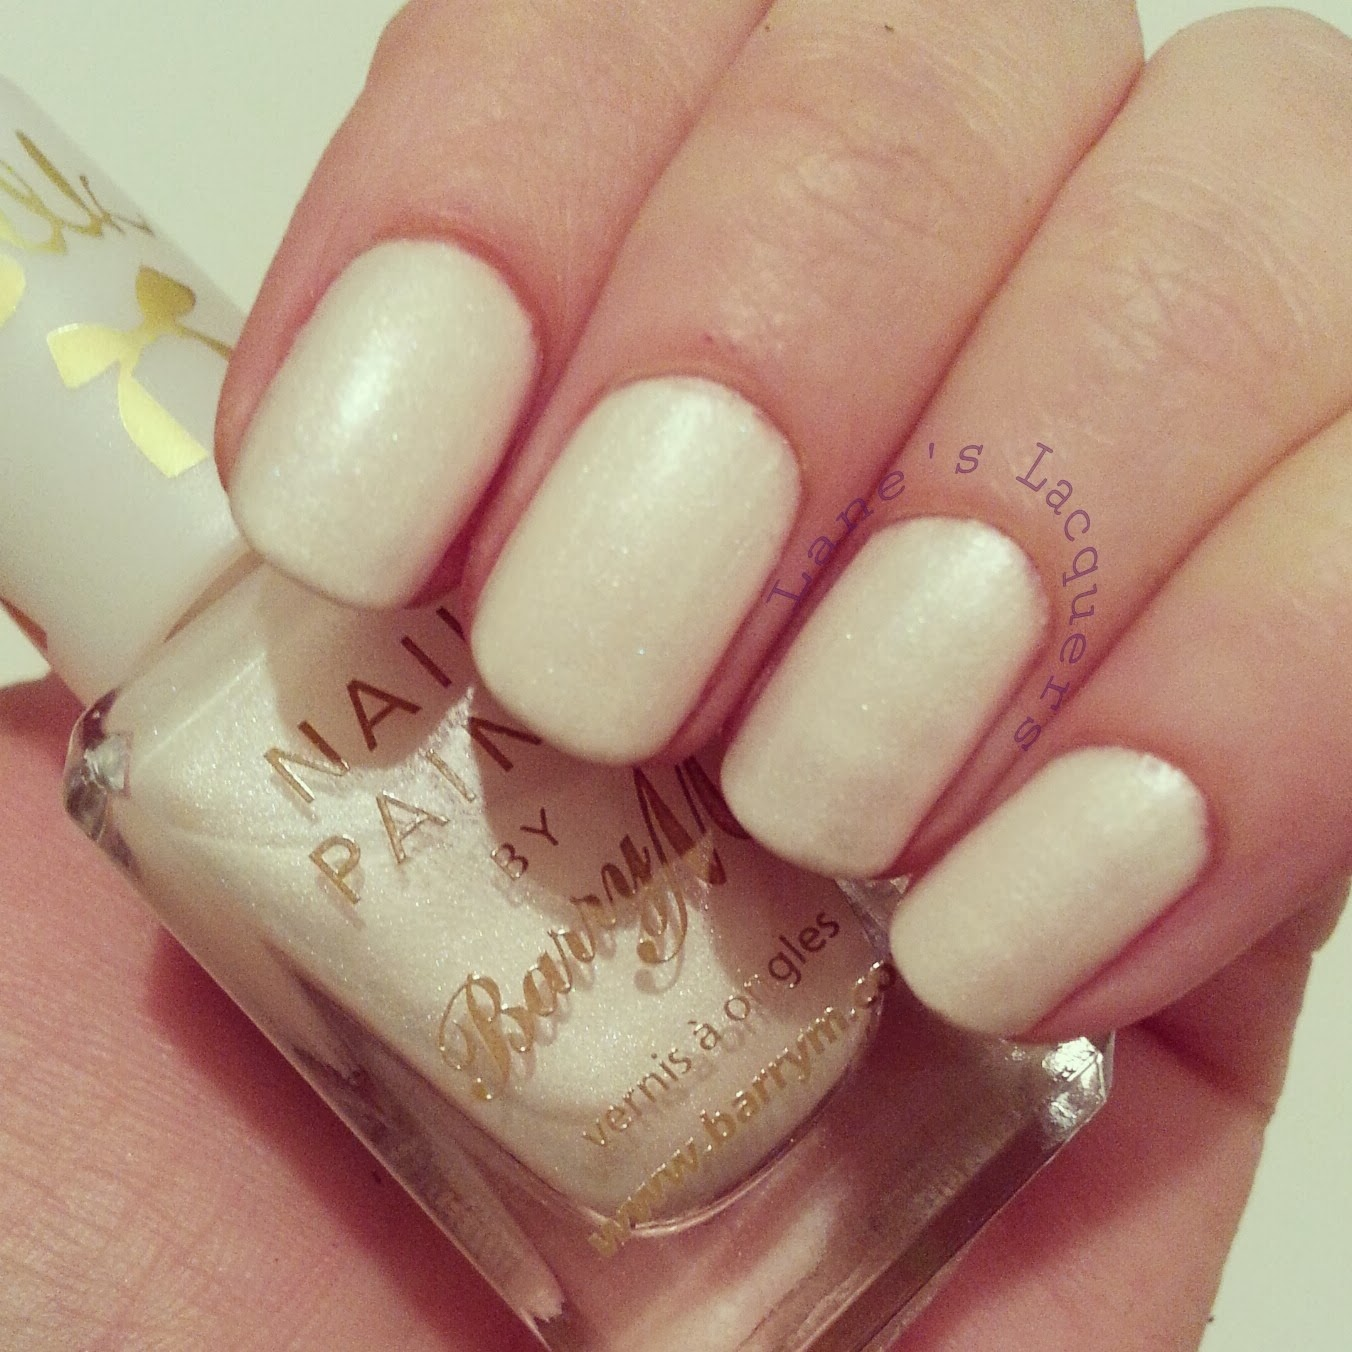 barry-m-silk-pearl-swatch-nails